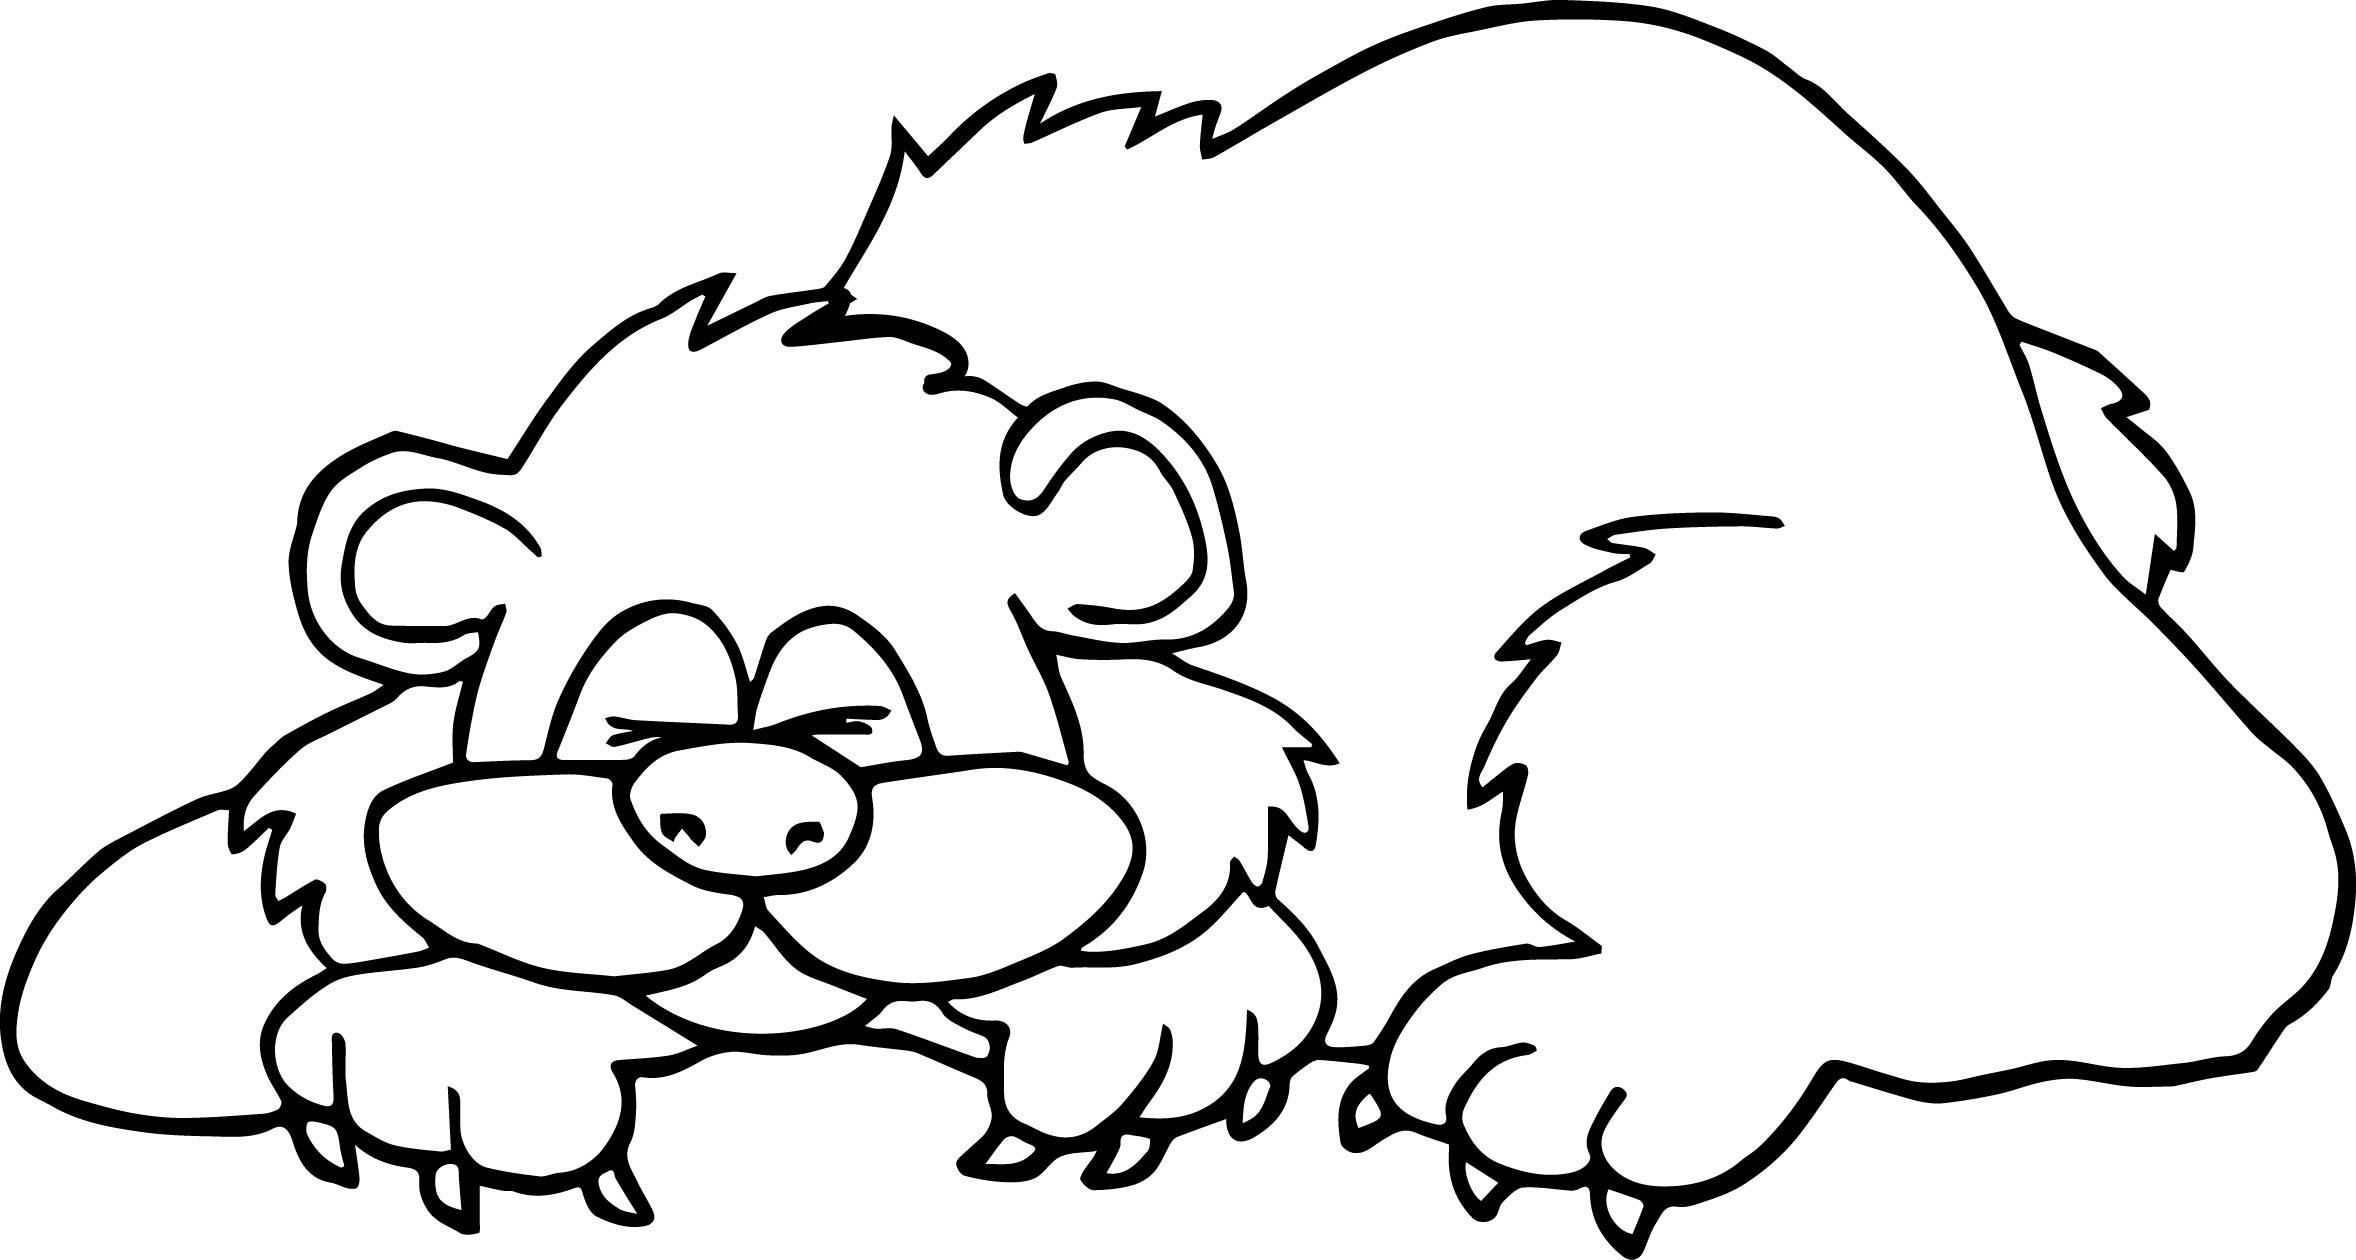 Cave clipart coloring page. Approved hibernating bear fresh